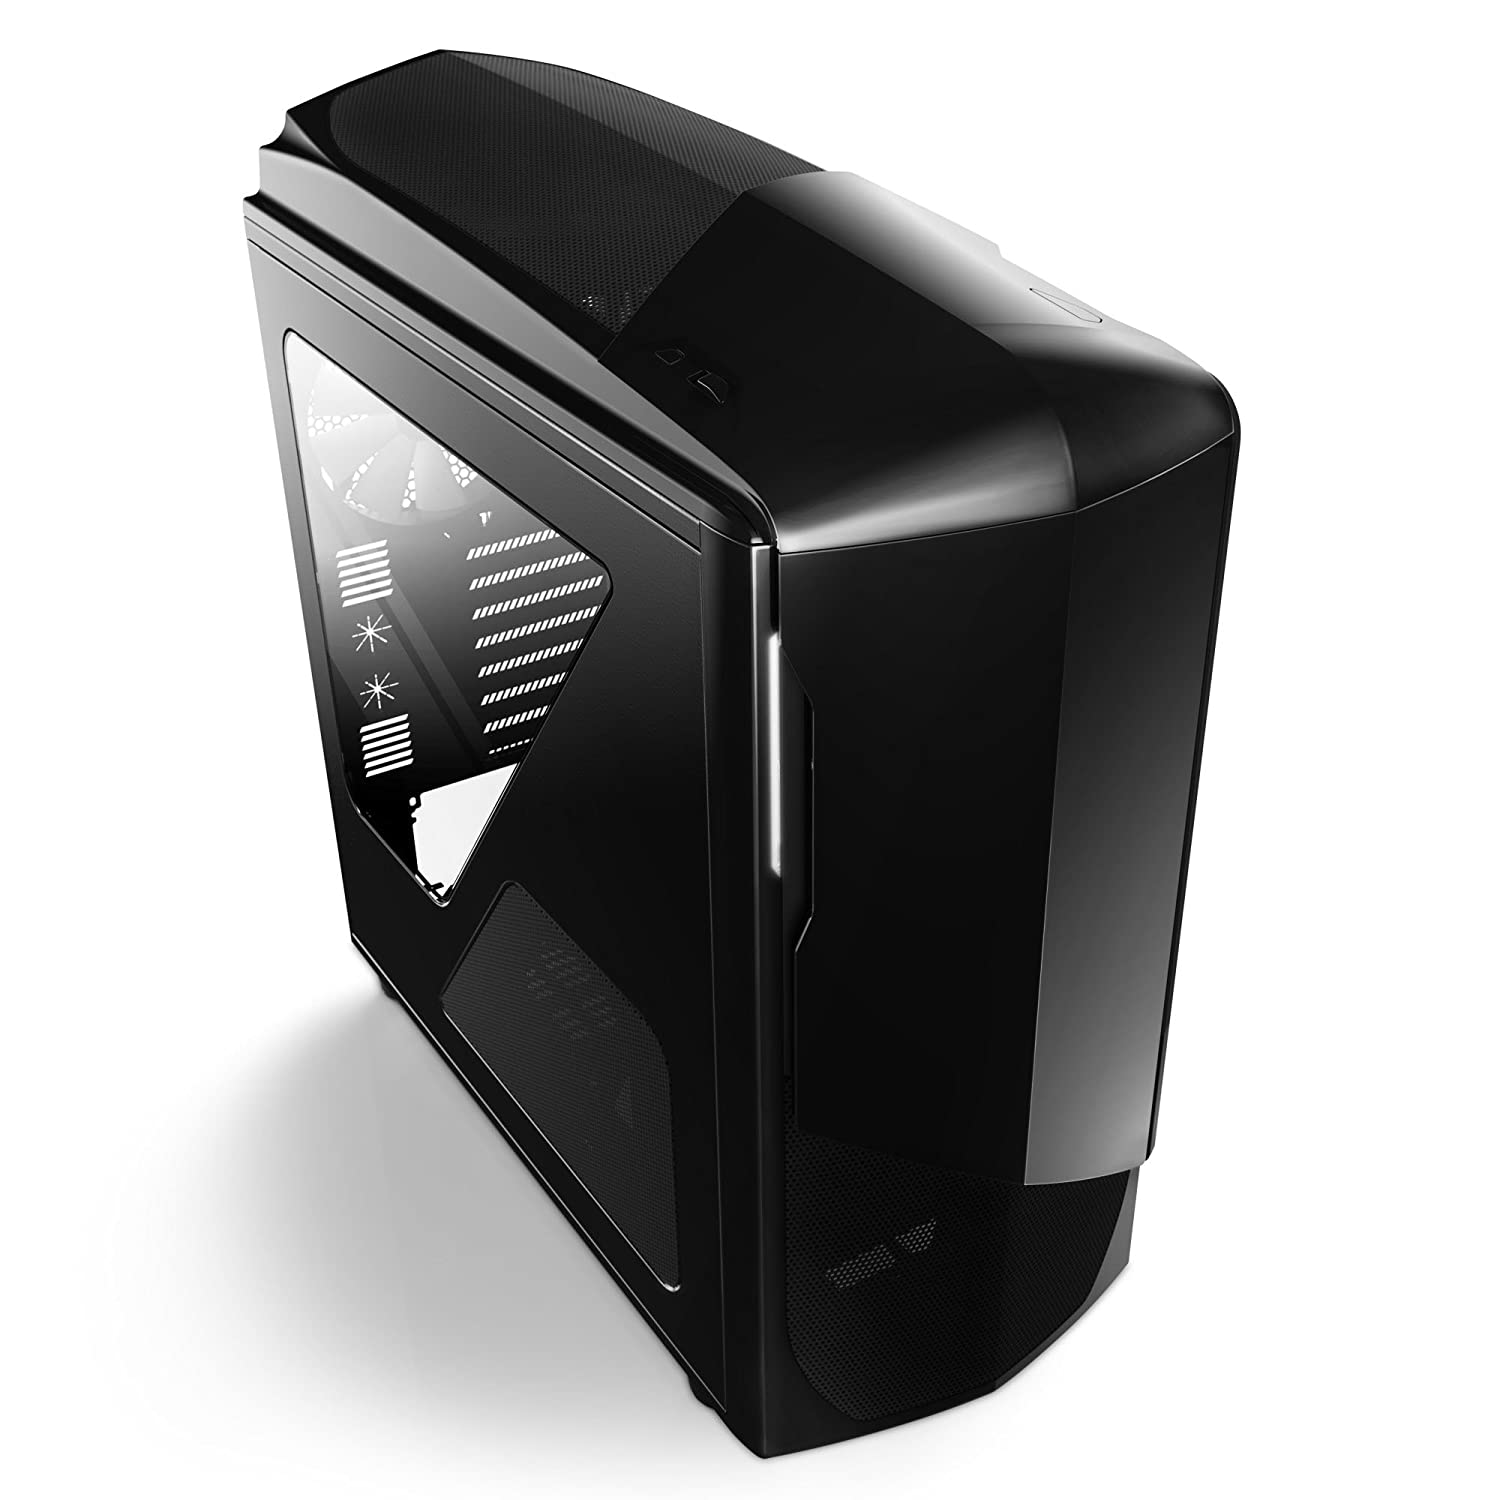 NZXT Phantom 530 - Build a Gaming PC: February 2014 Tax Refund Edition